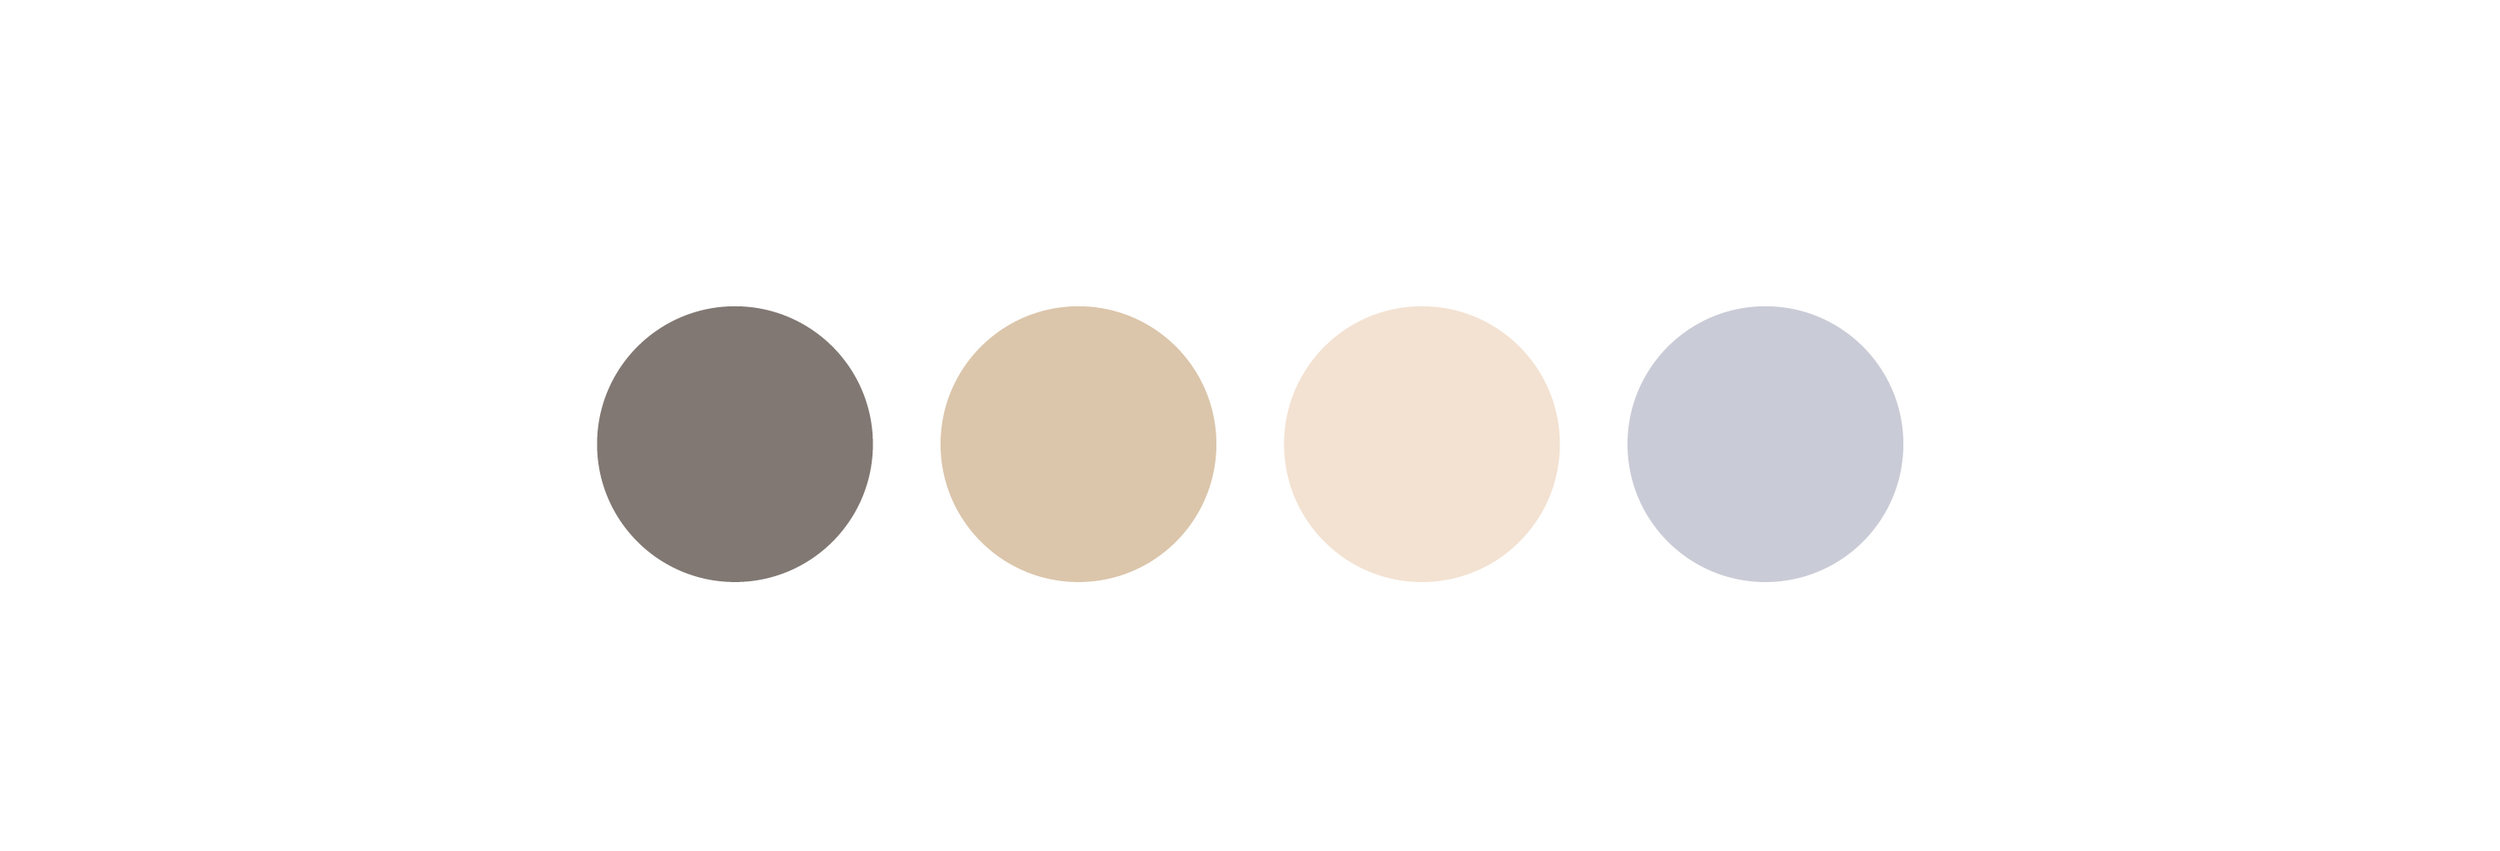 Riley Yahr Creative Studio -  Color Palette - Adorn.jpg